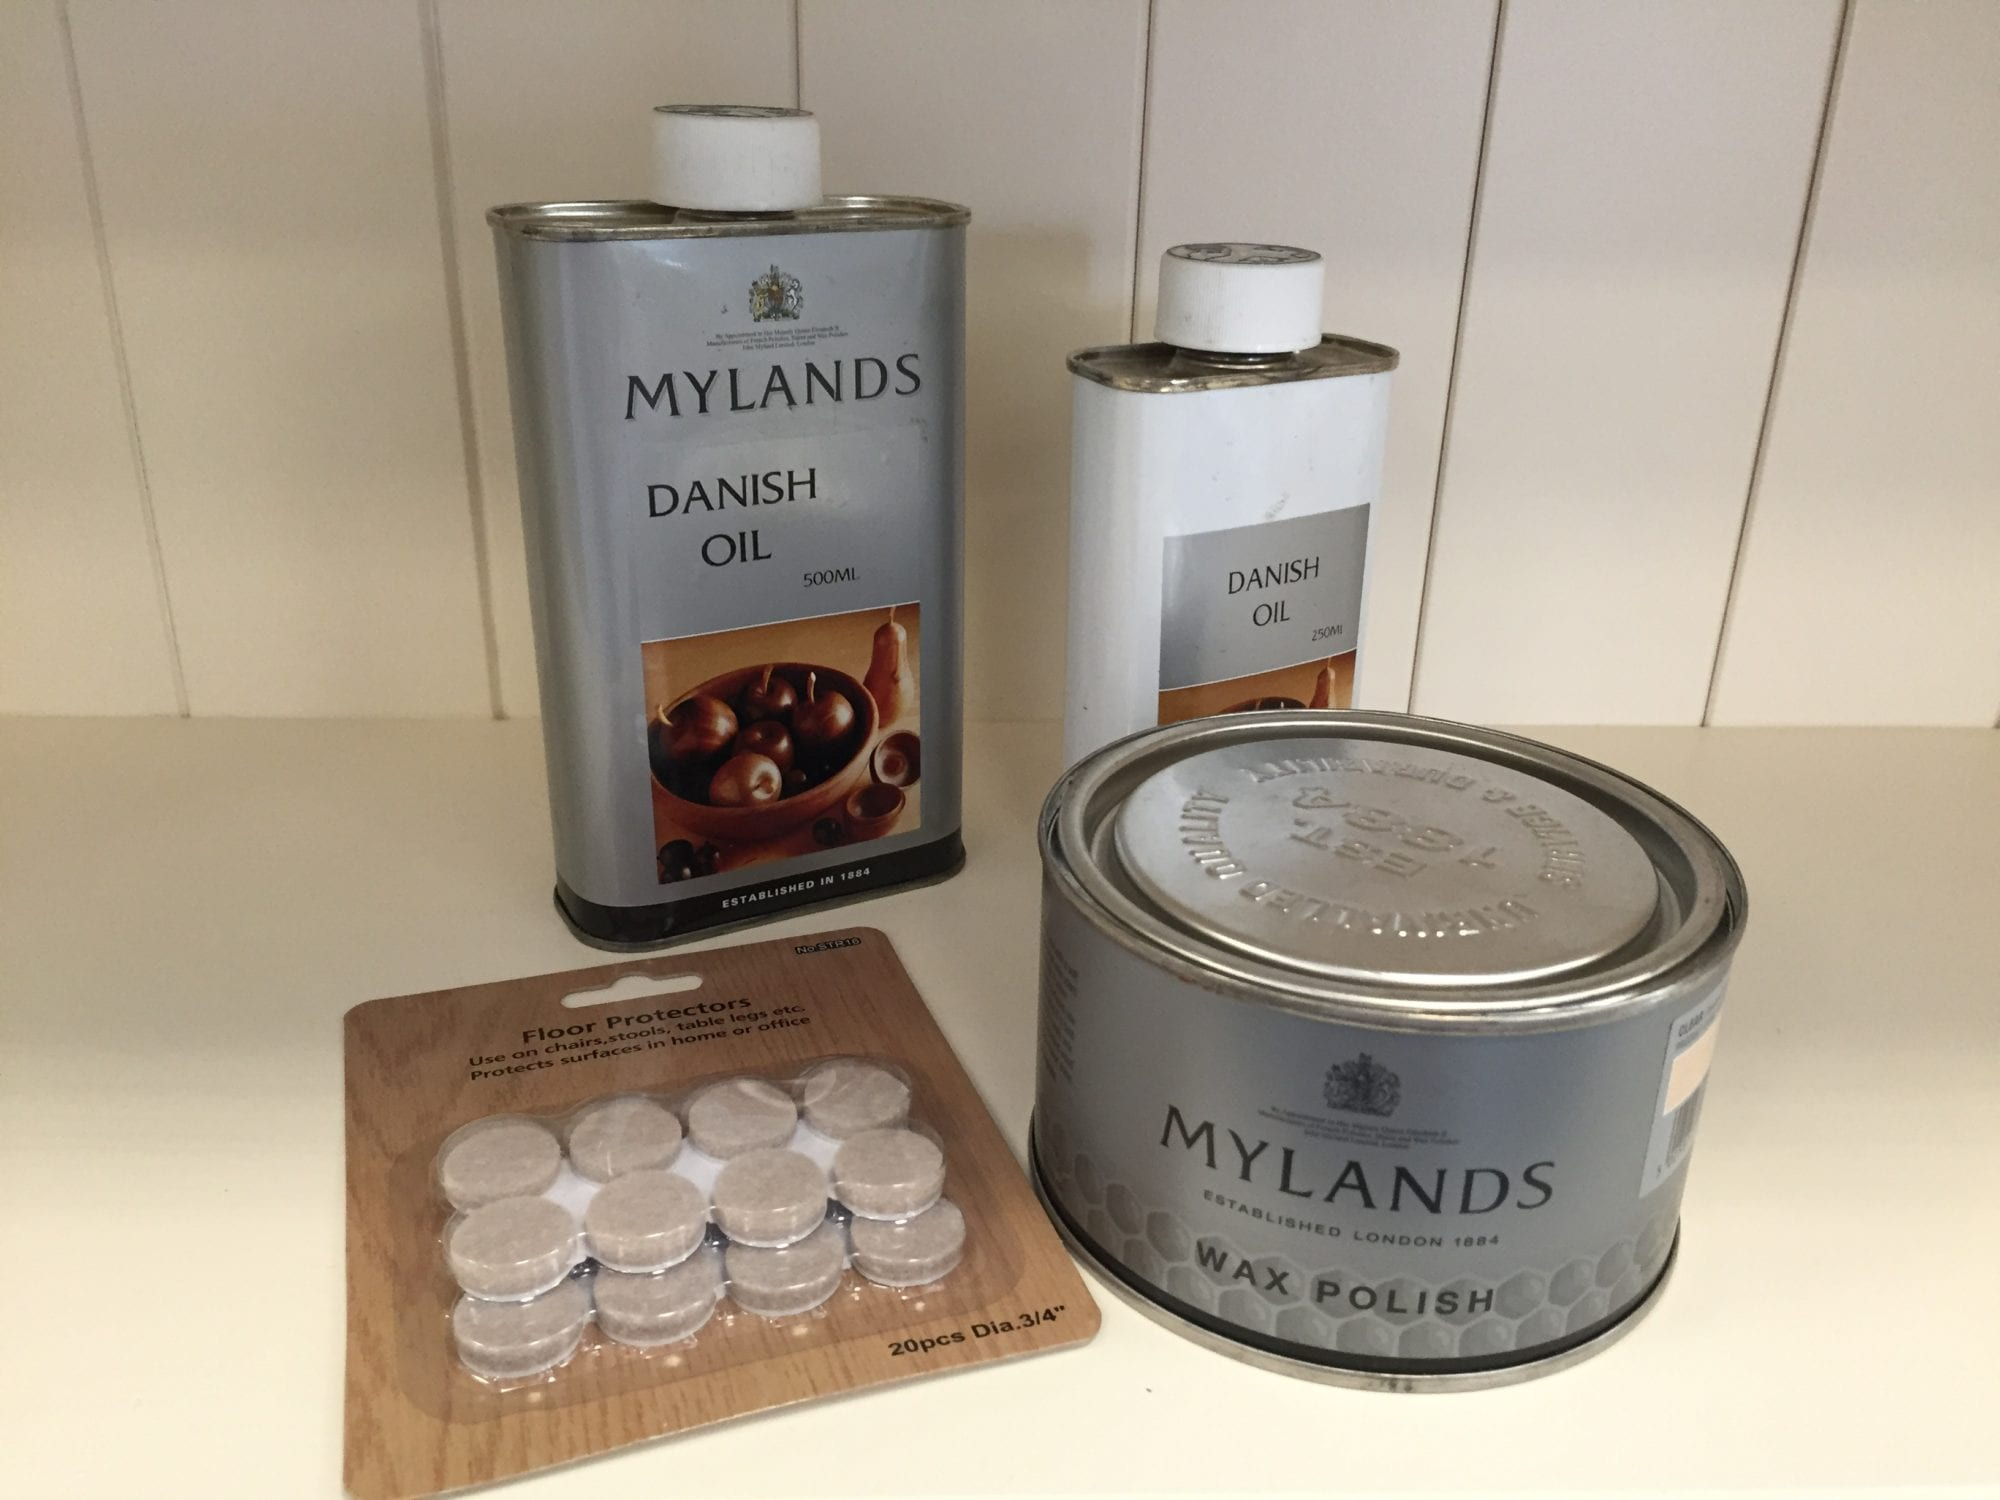 Edmunds & Clarke Furniture Ltd Furniture Care Multi including Mylands Wax Polish, Mylands Danish Oil, Floor protectors